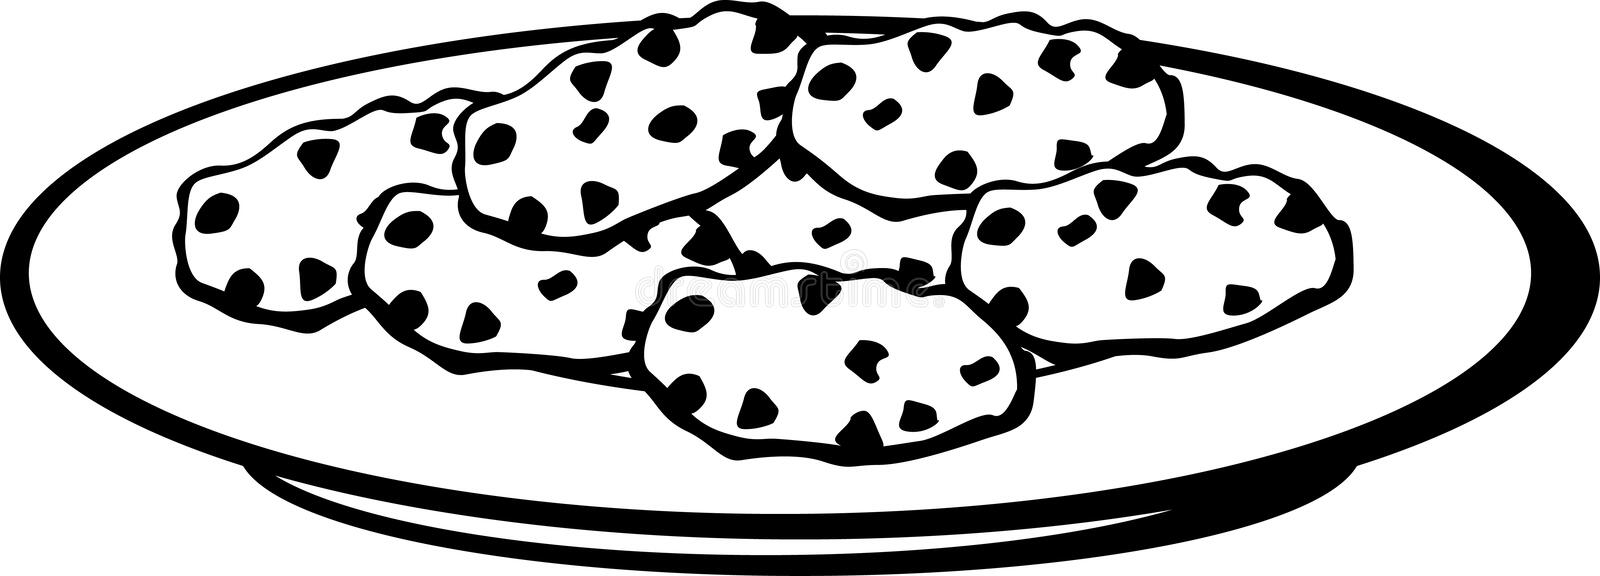 chocolate chip cookies dish vector illustration stock vector rh dreamstime com